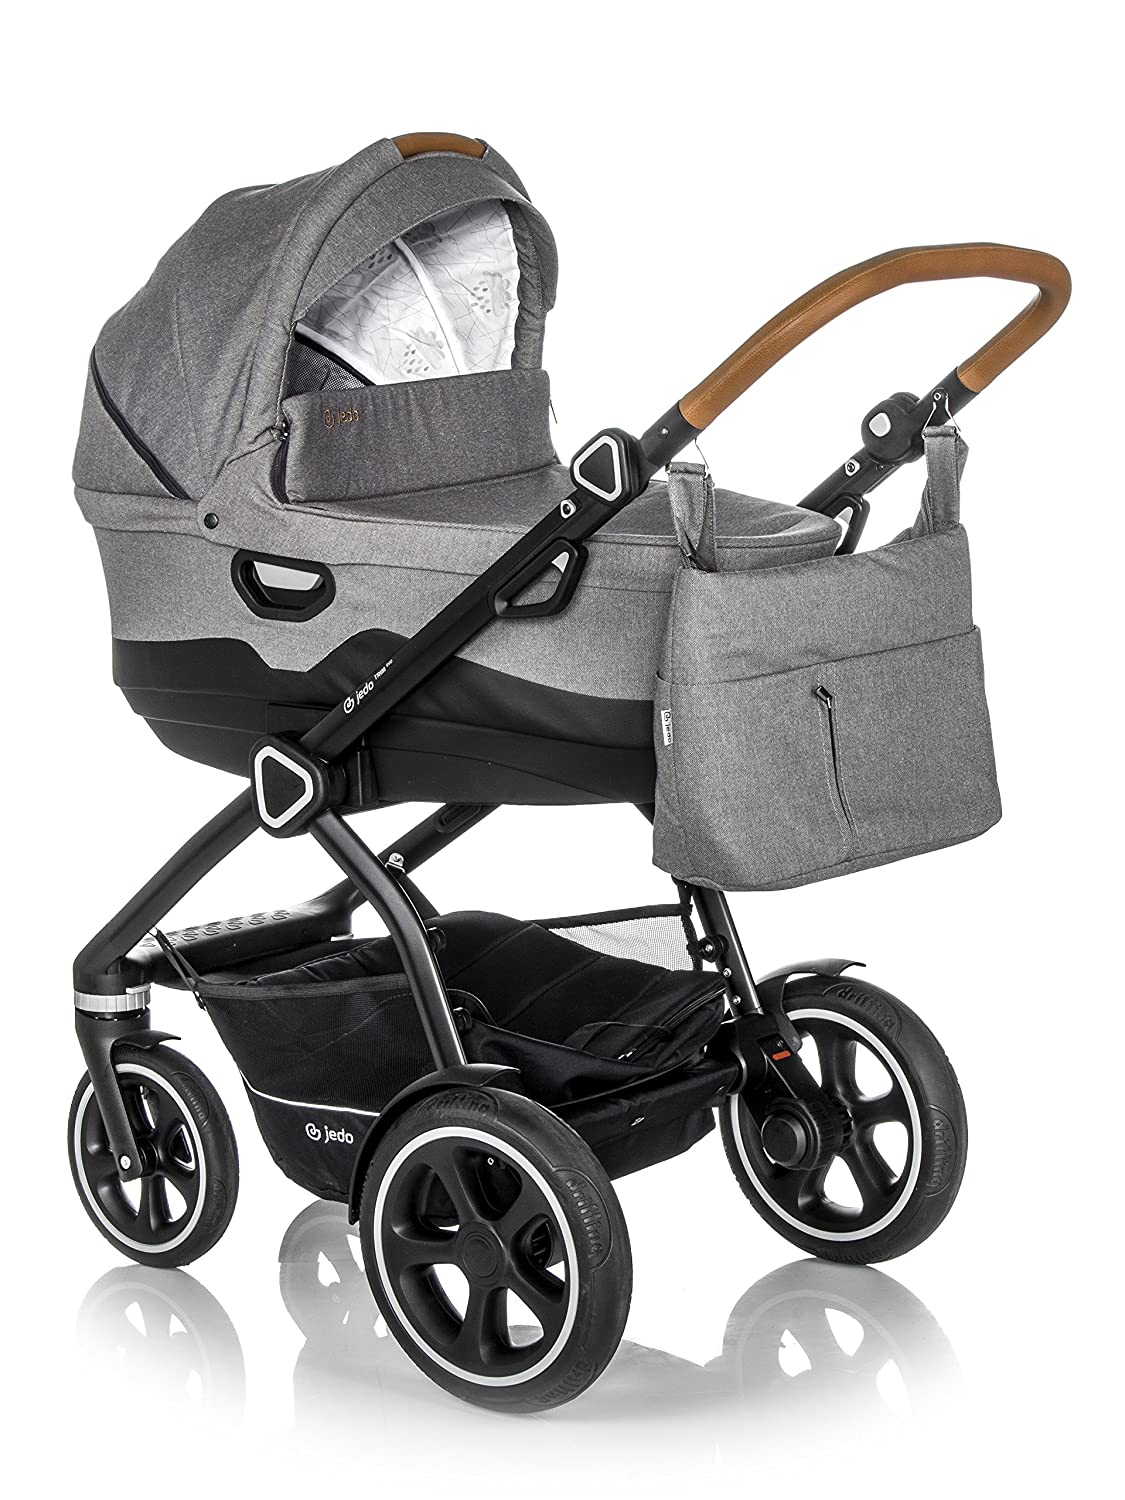 Baby stroller Jedo: photo and review of models, reviews 58